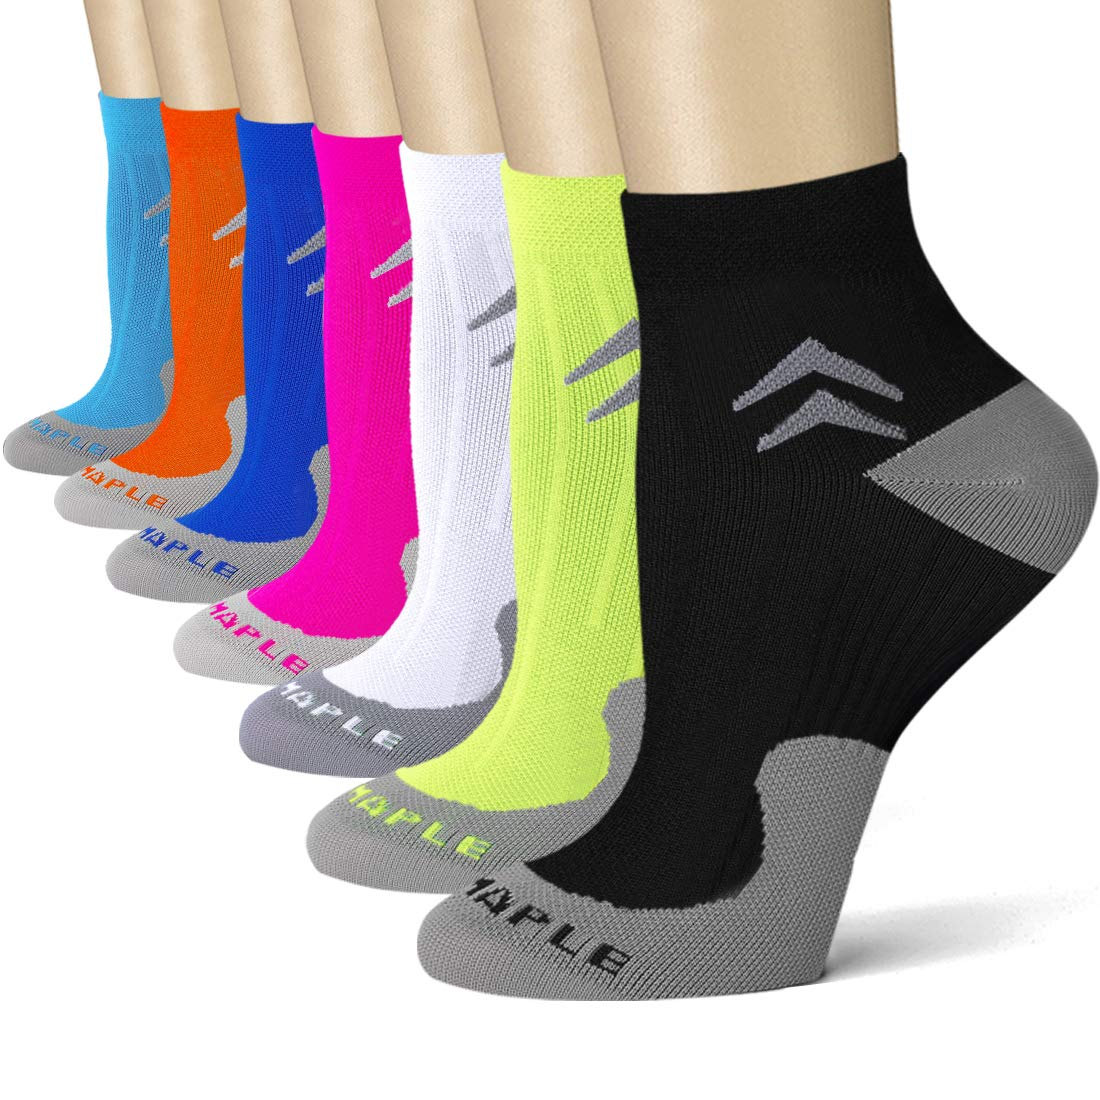 Bluemaple 7 Pair Compression Socks for Women and Men, Compression Ankle Socks, Regular wear, Fashion wear -Say Goodbye to Your Pain(7pack-L/XL) by Bluemaple